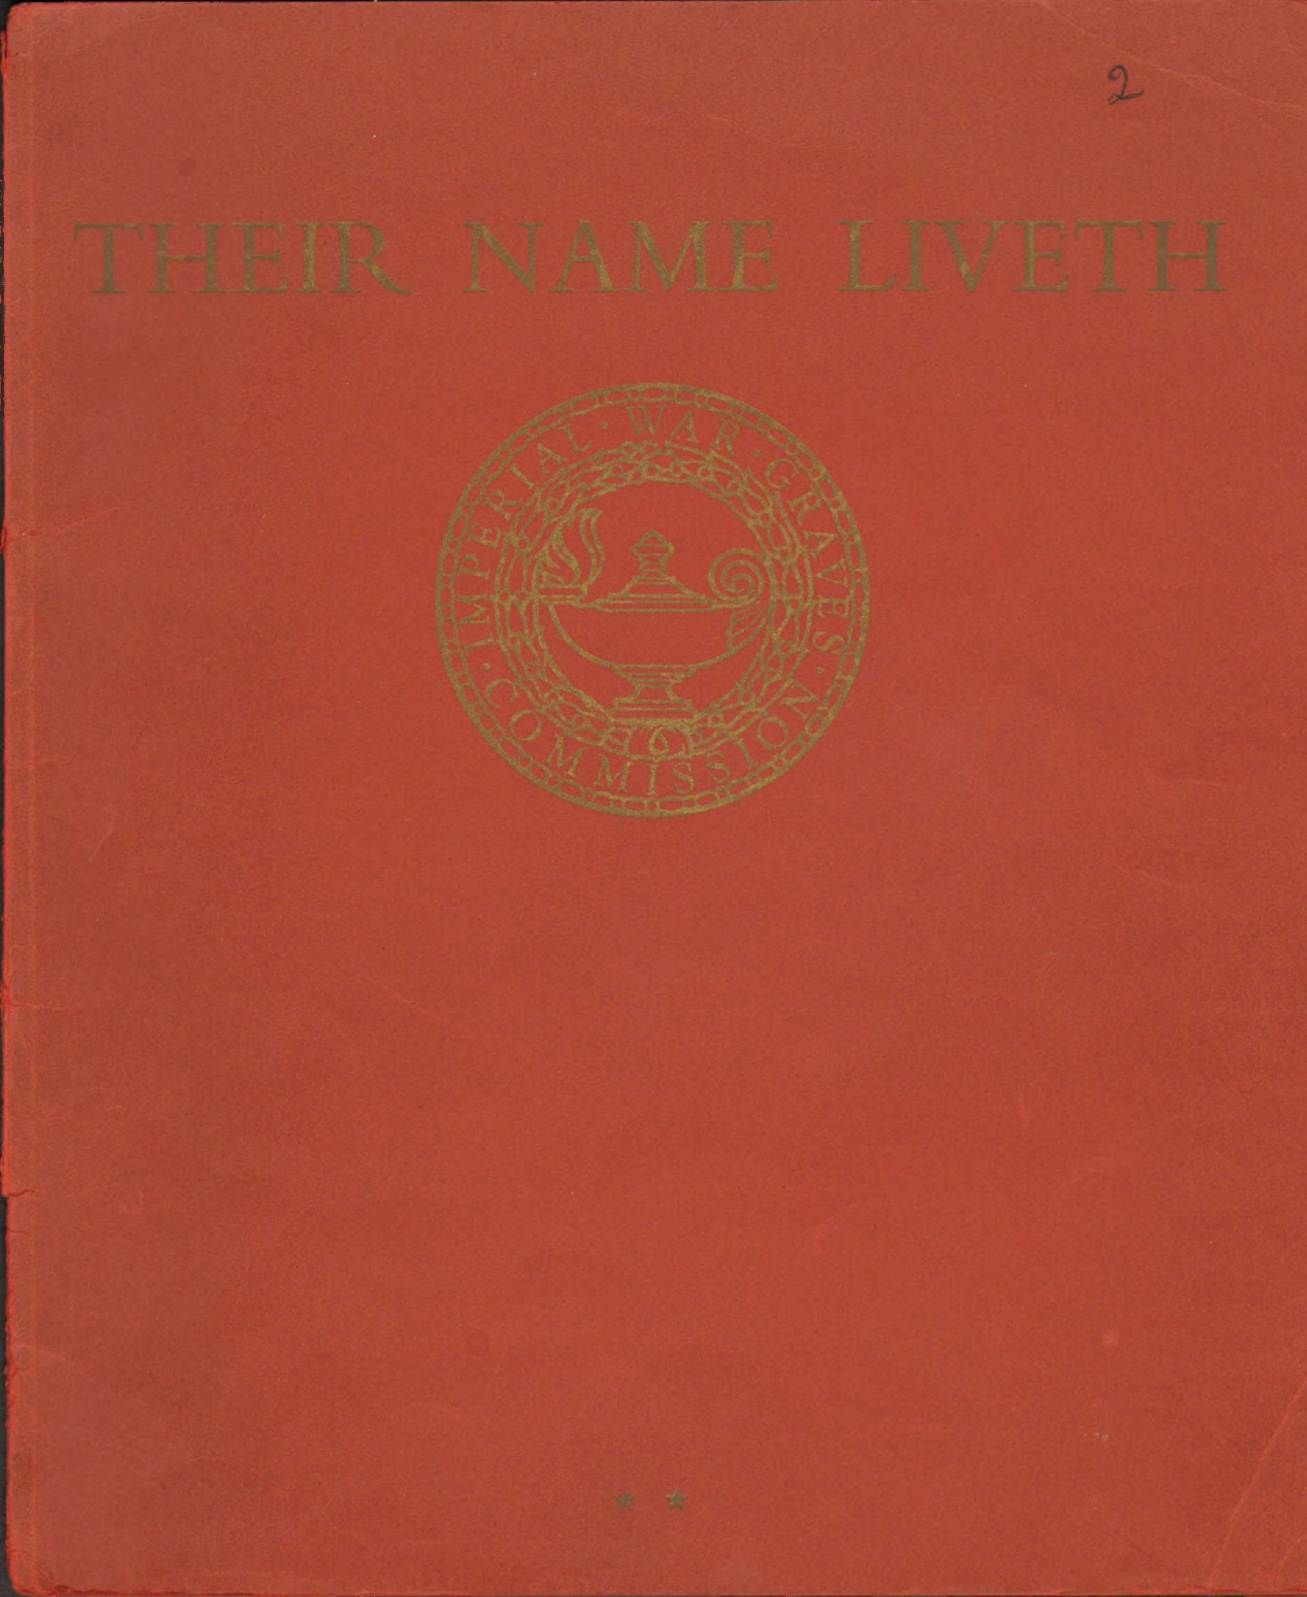 View individual pages of 'Their Name Liveth, Vol. III, Part II'